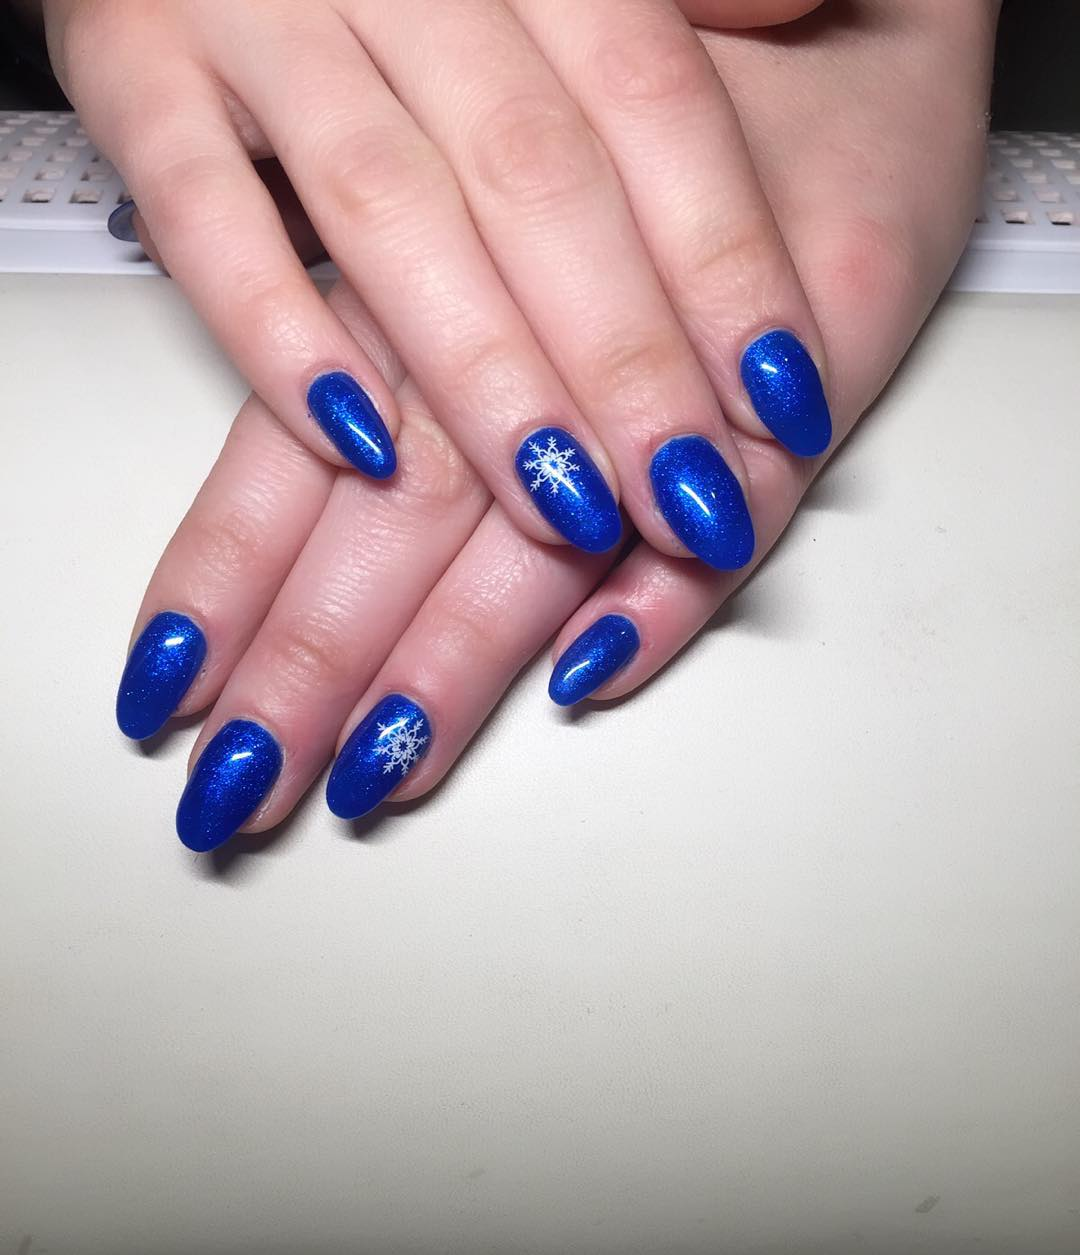 Nail Ideas: 21+ Royal Blue Nail Art Designs, Ideas